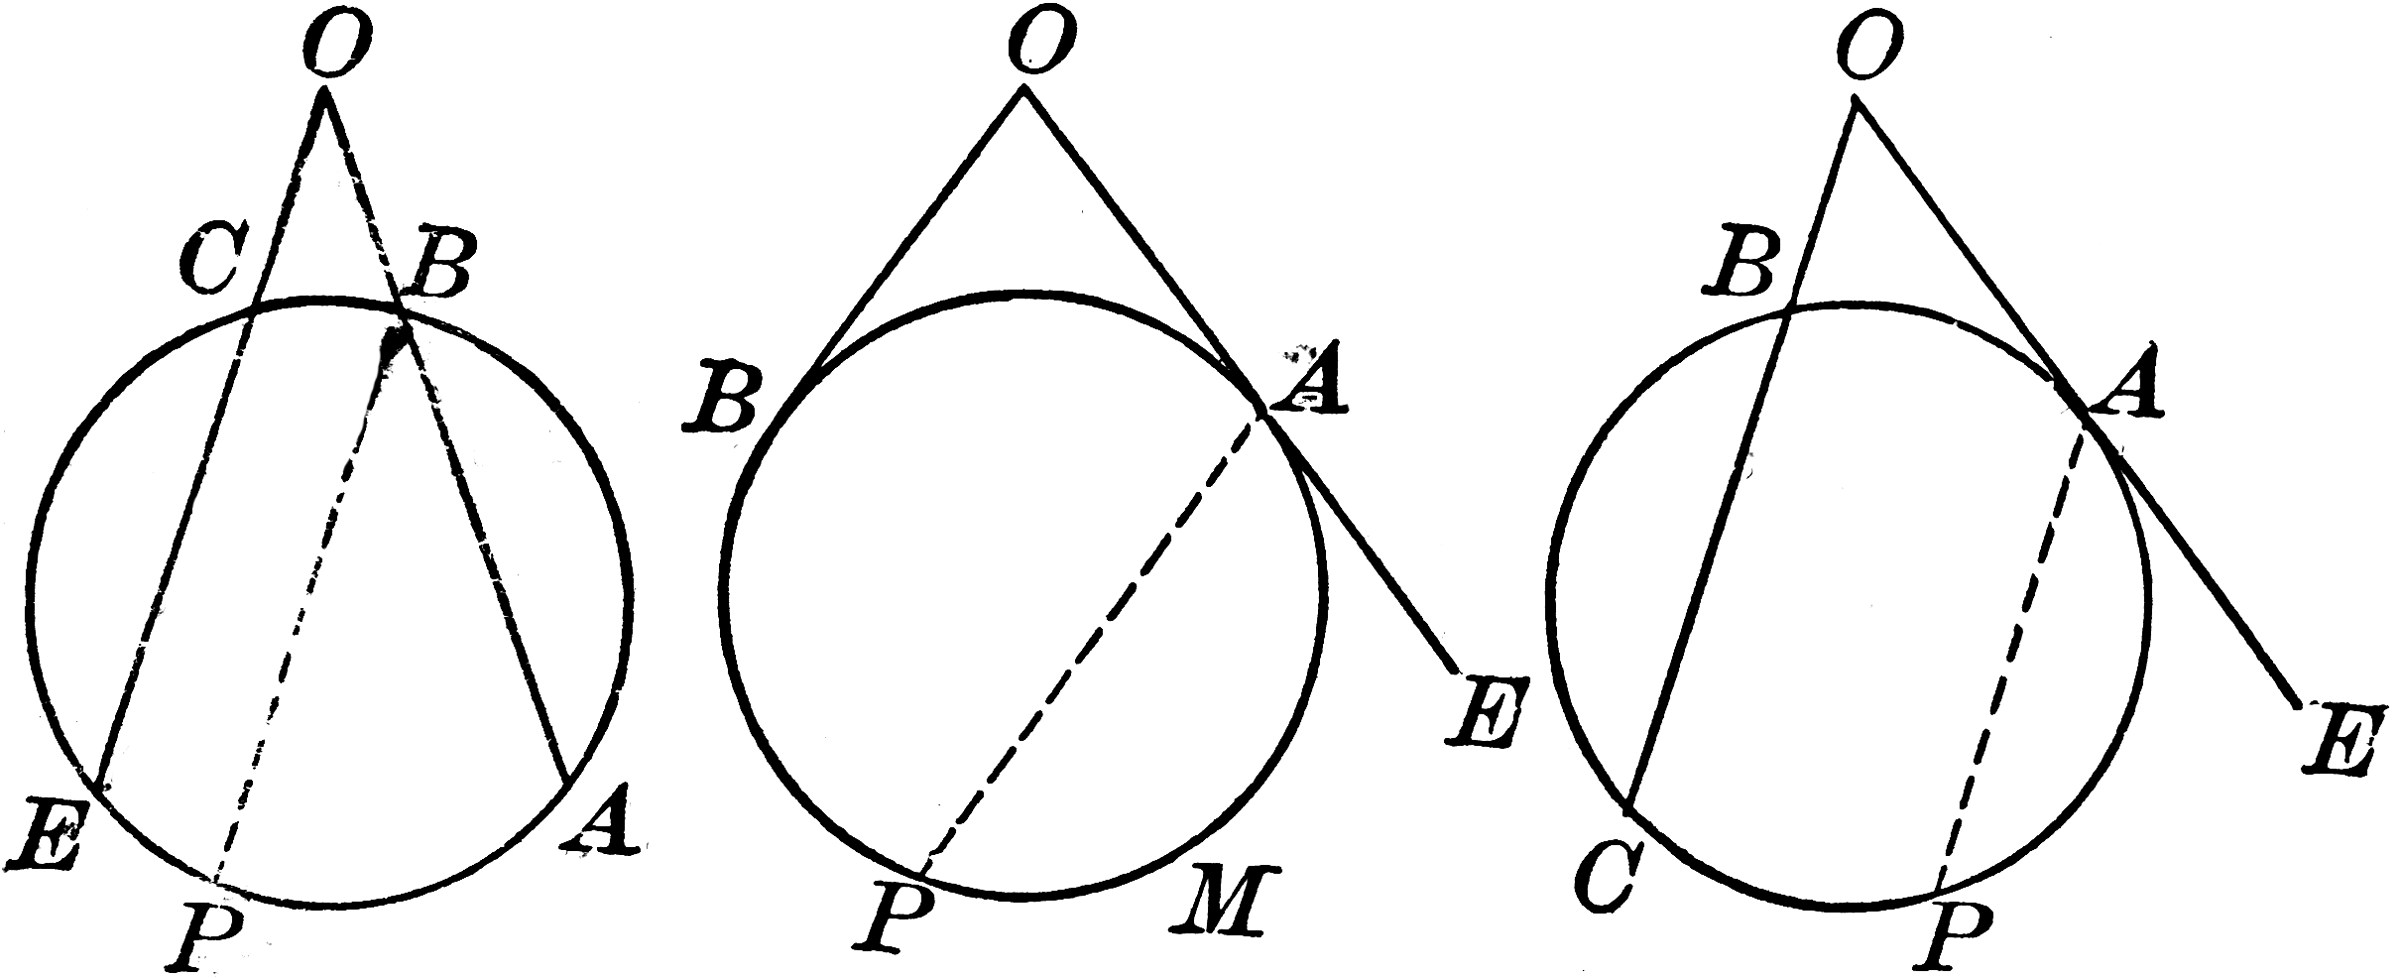 Circles With Angles Formed by Secants and Tangents